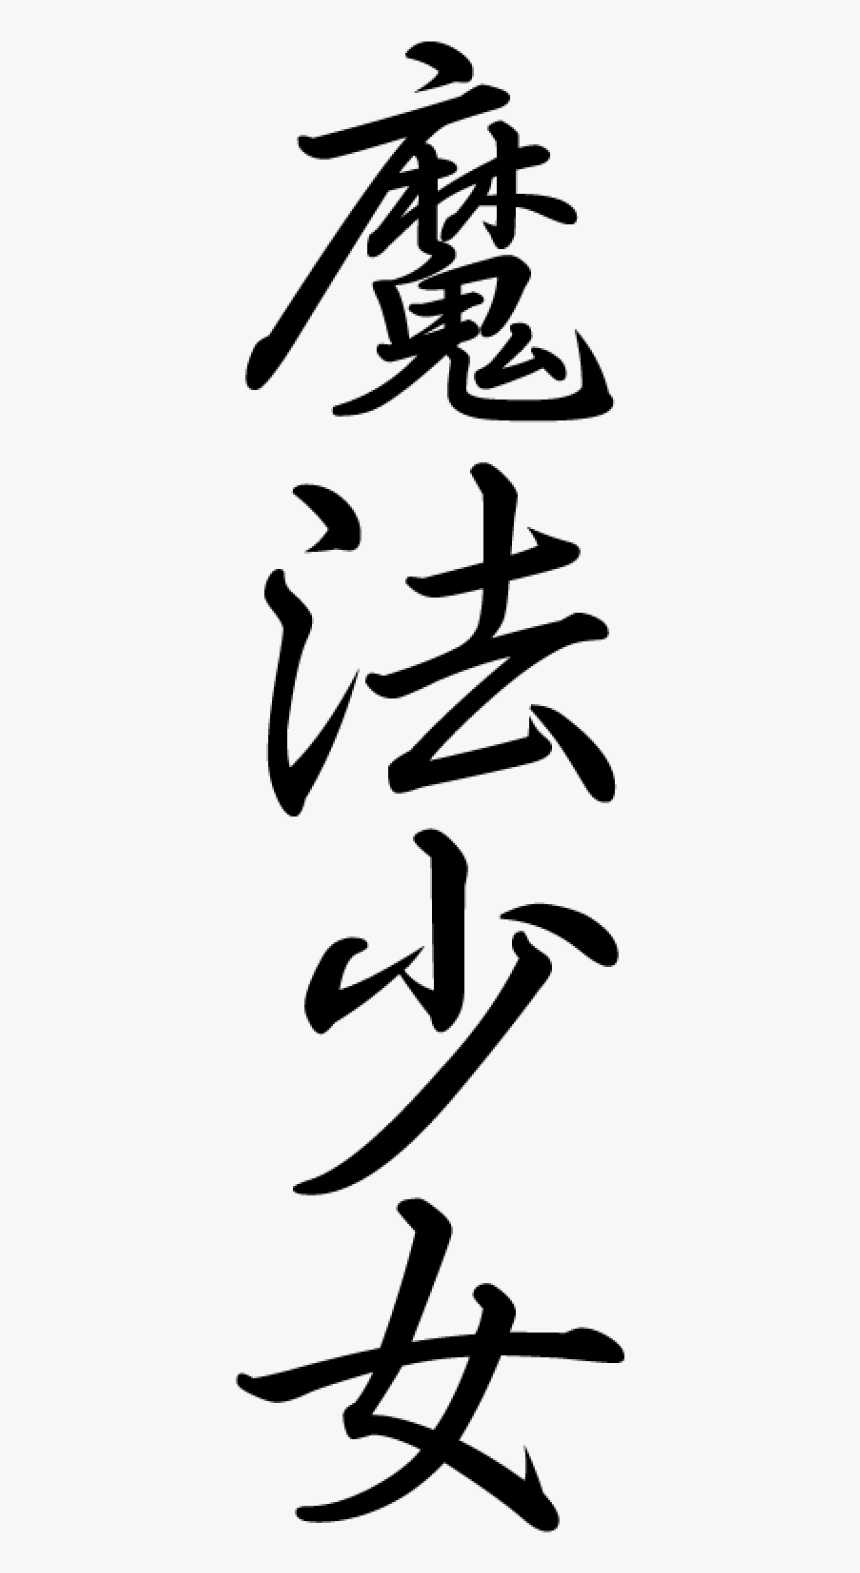 Transparent Japanese Text Png, Png Download, Free Download